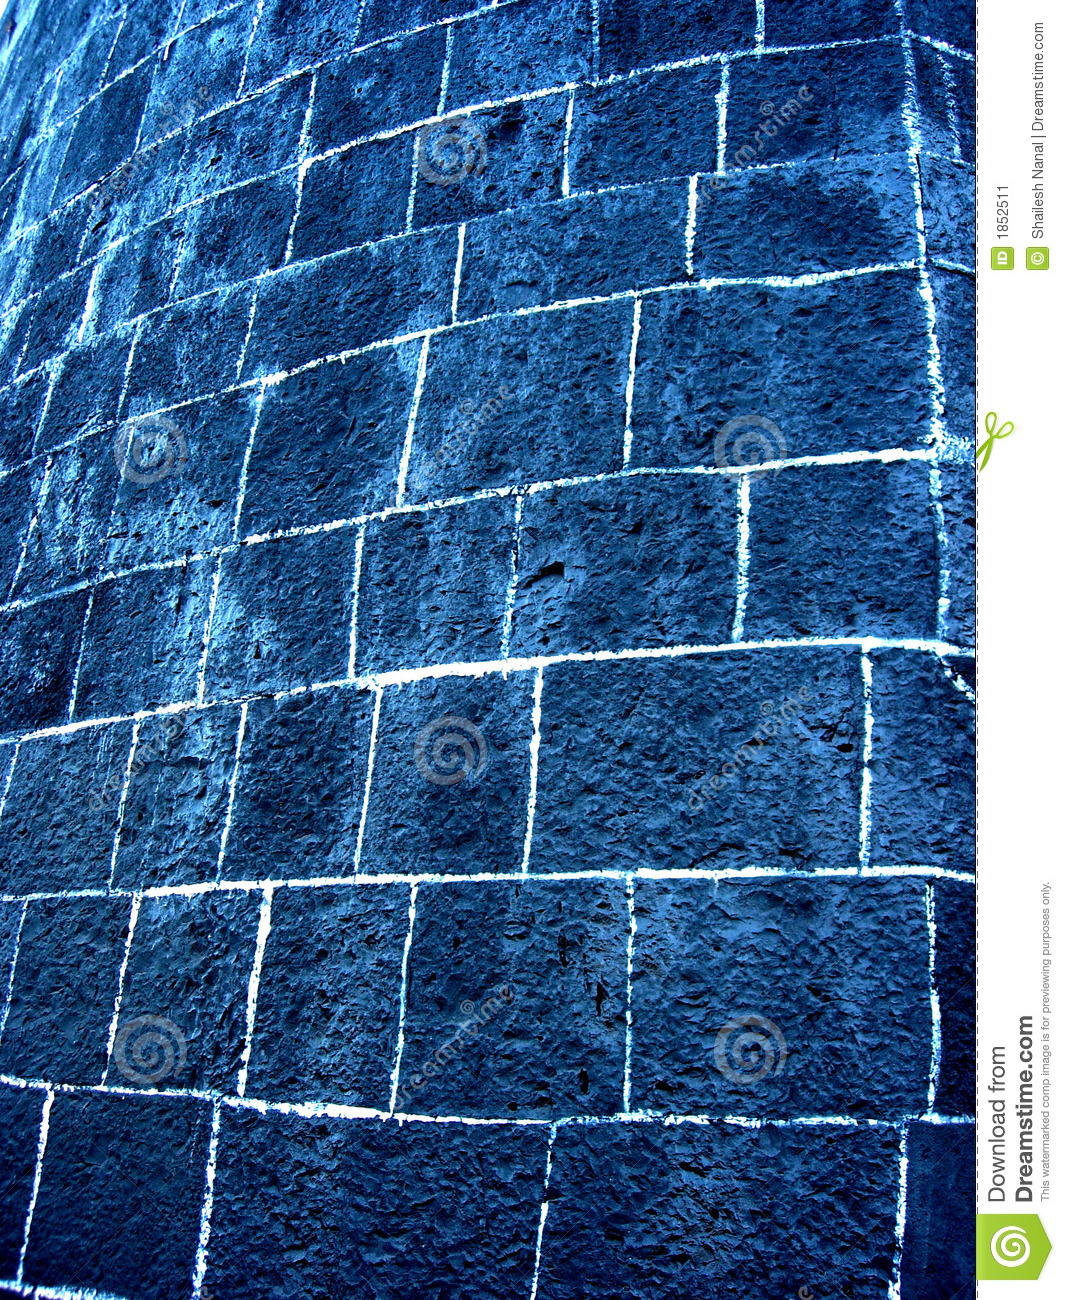 Prison Wall Texture Stock Image - Image: 1852511 Prison Wall Texture